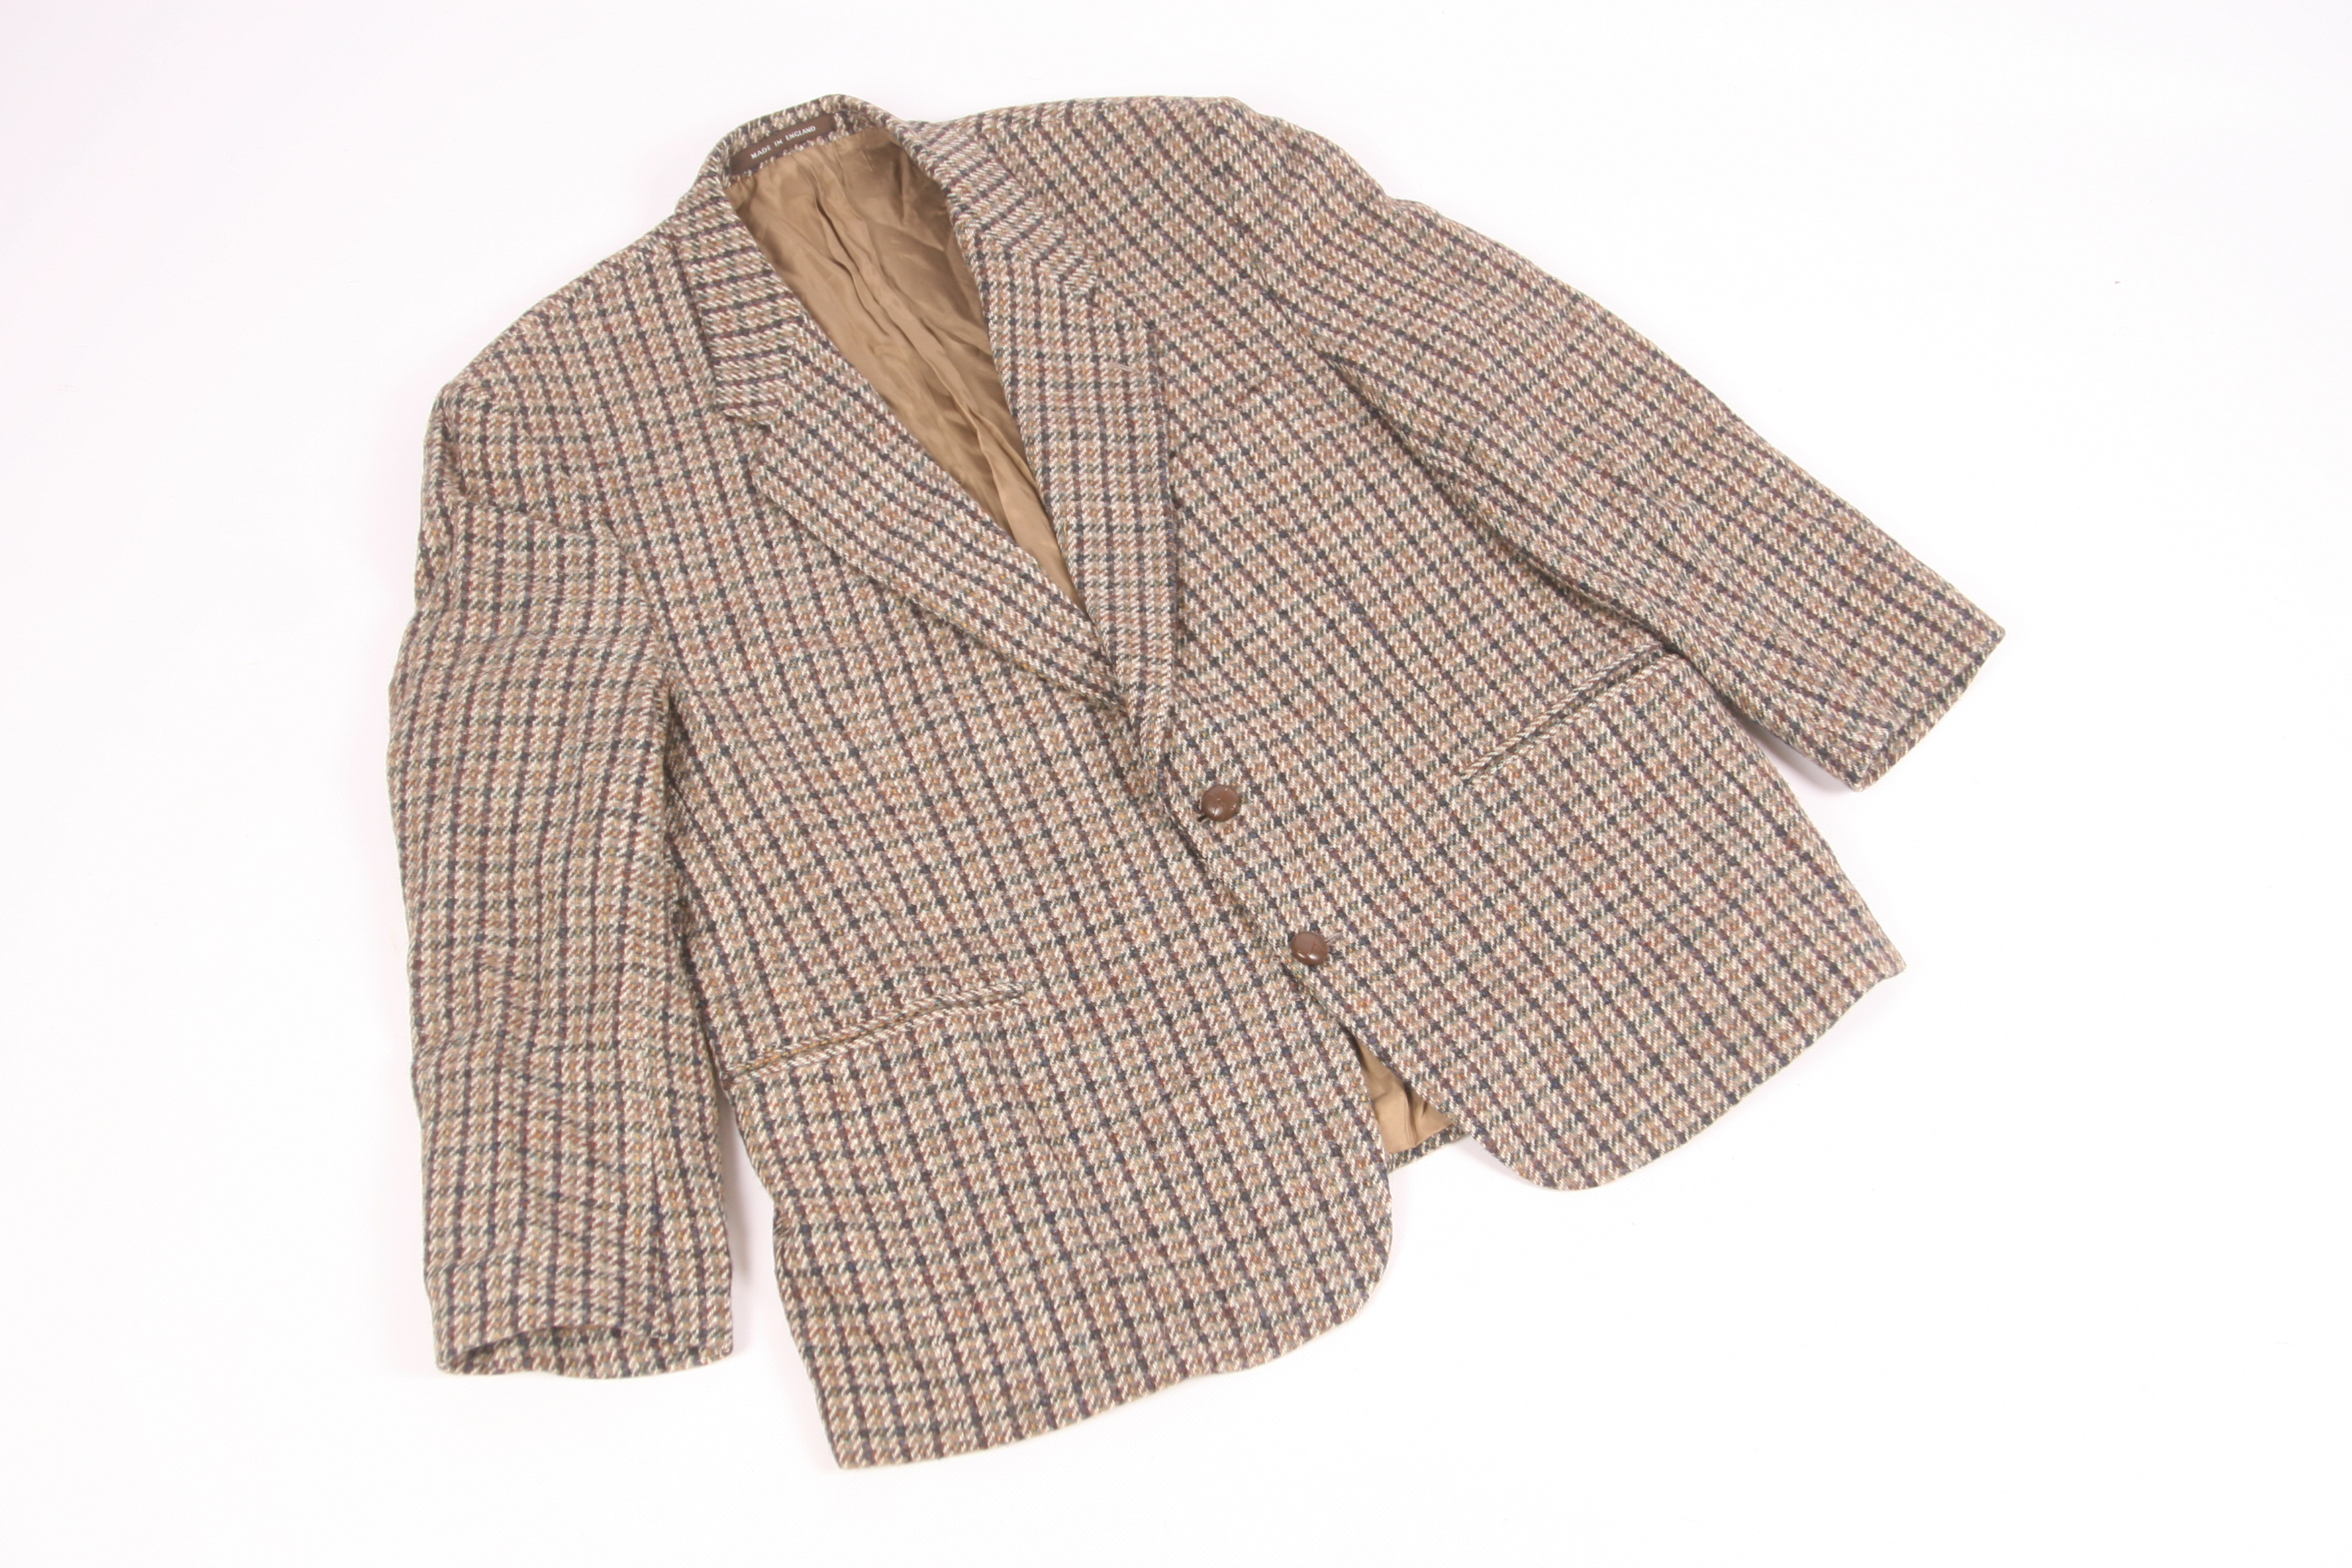 Vintage Austin Reed By Harris Tweed Plaid Check Wool Blazer Coat Grailed